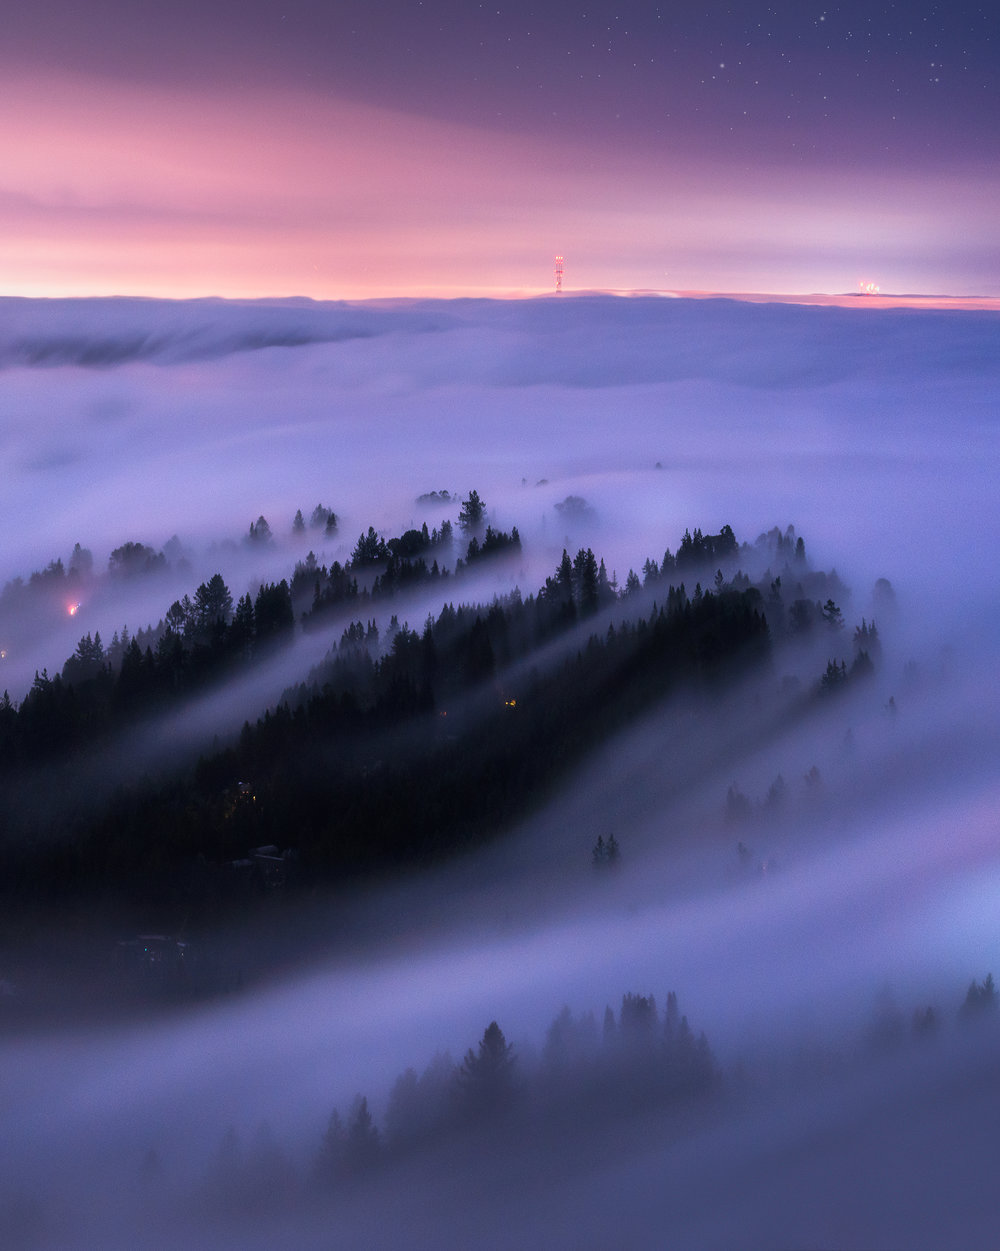 Moonlit Night Above the Fog- San Francisco, CA